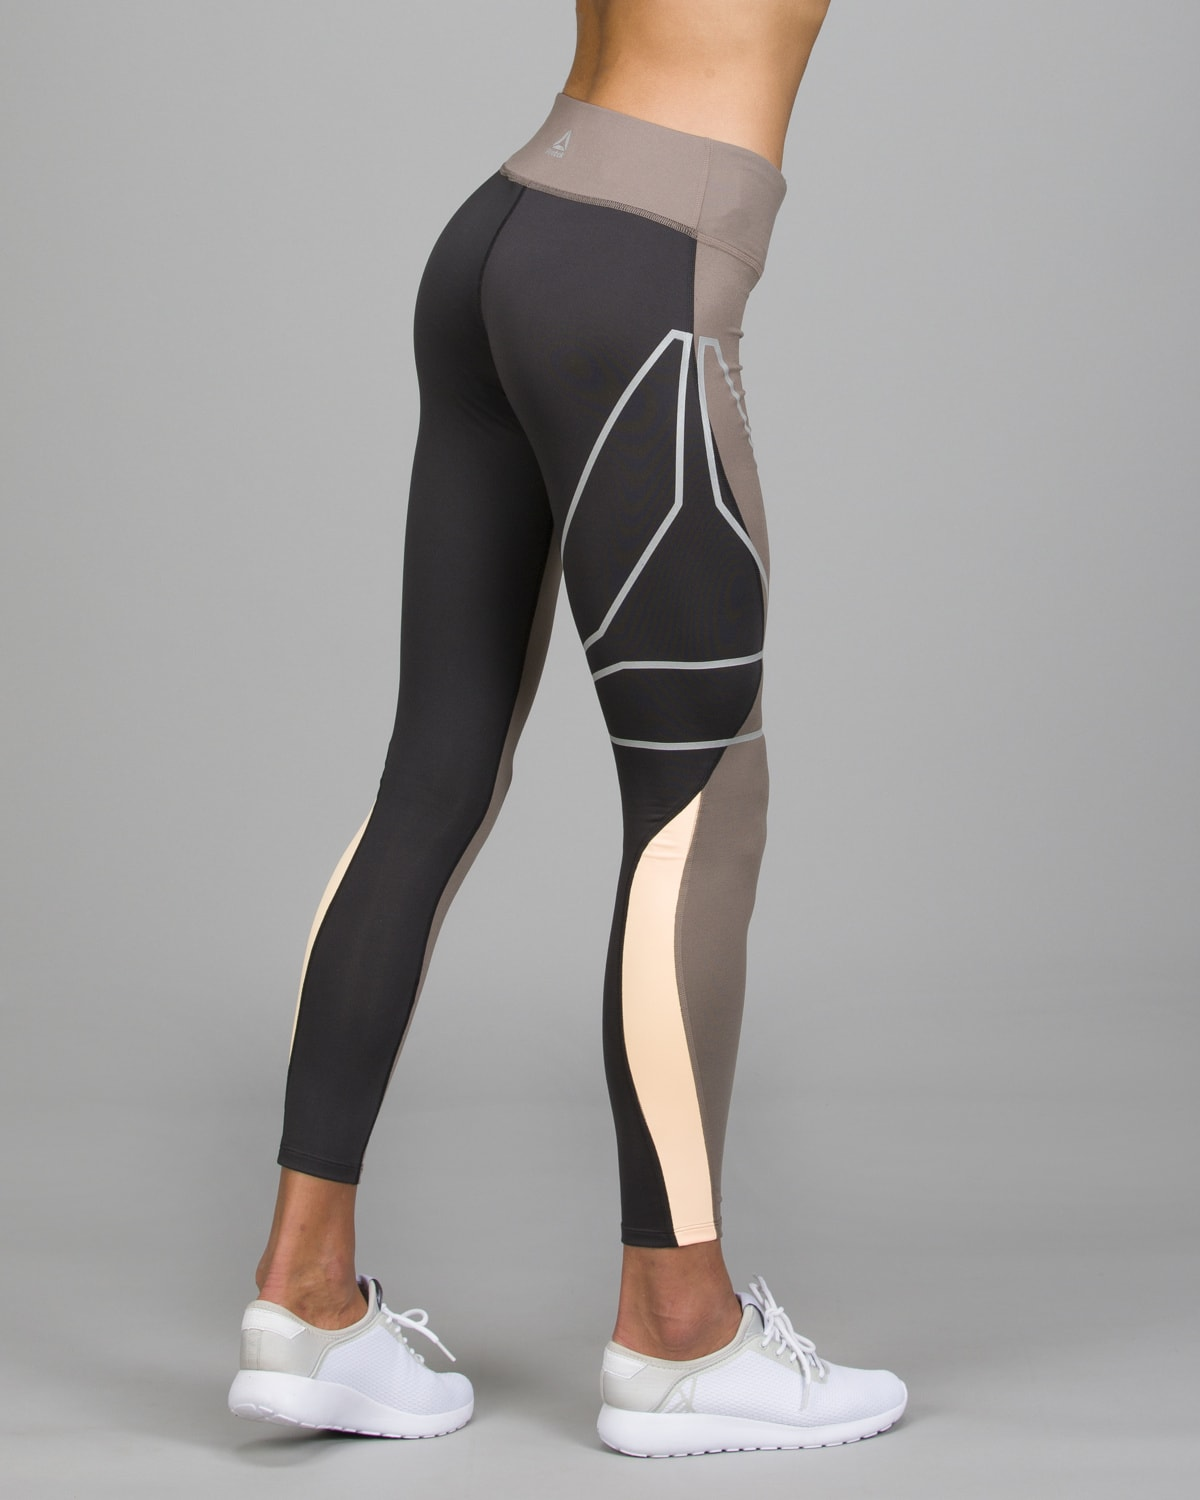 Reebok Running SpeedWick Tights.Smoky Taupe2